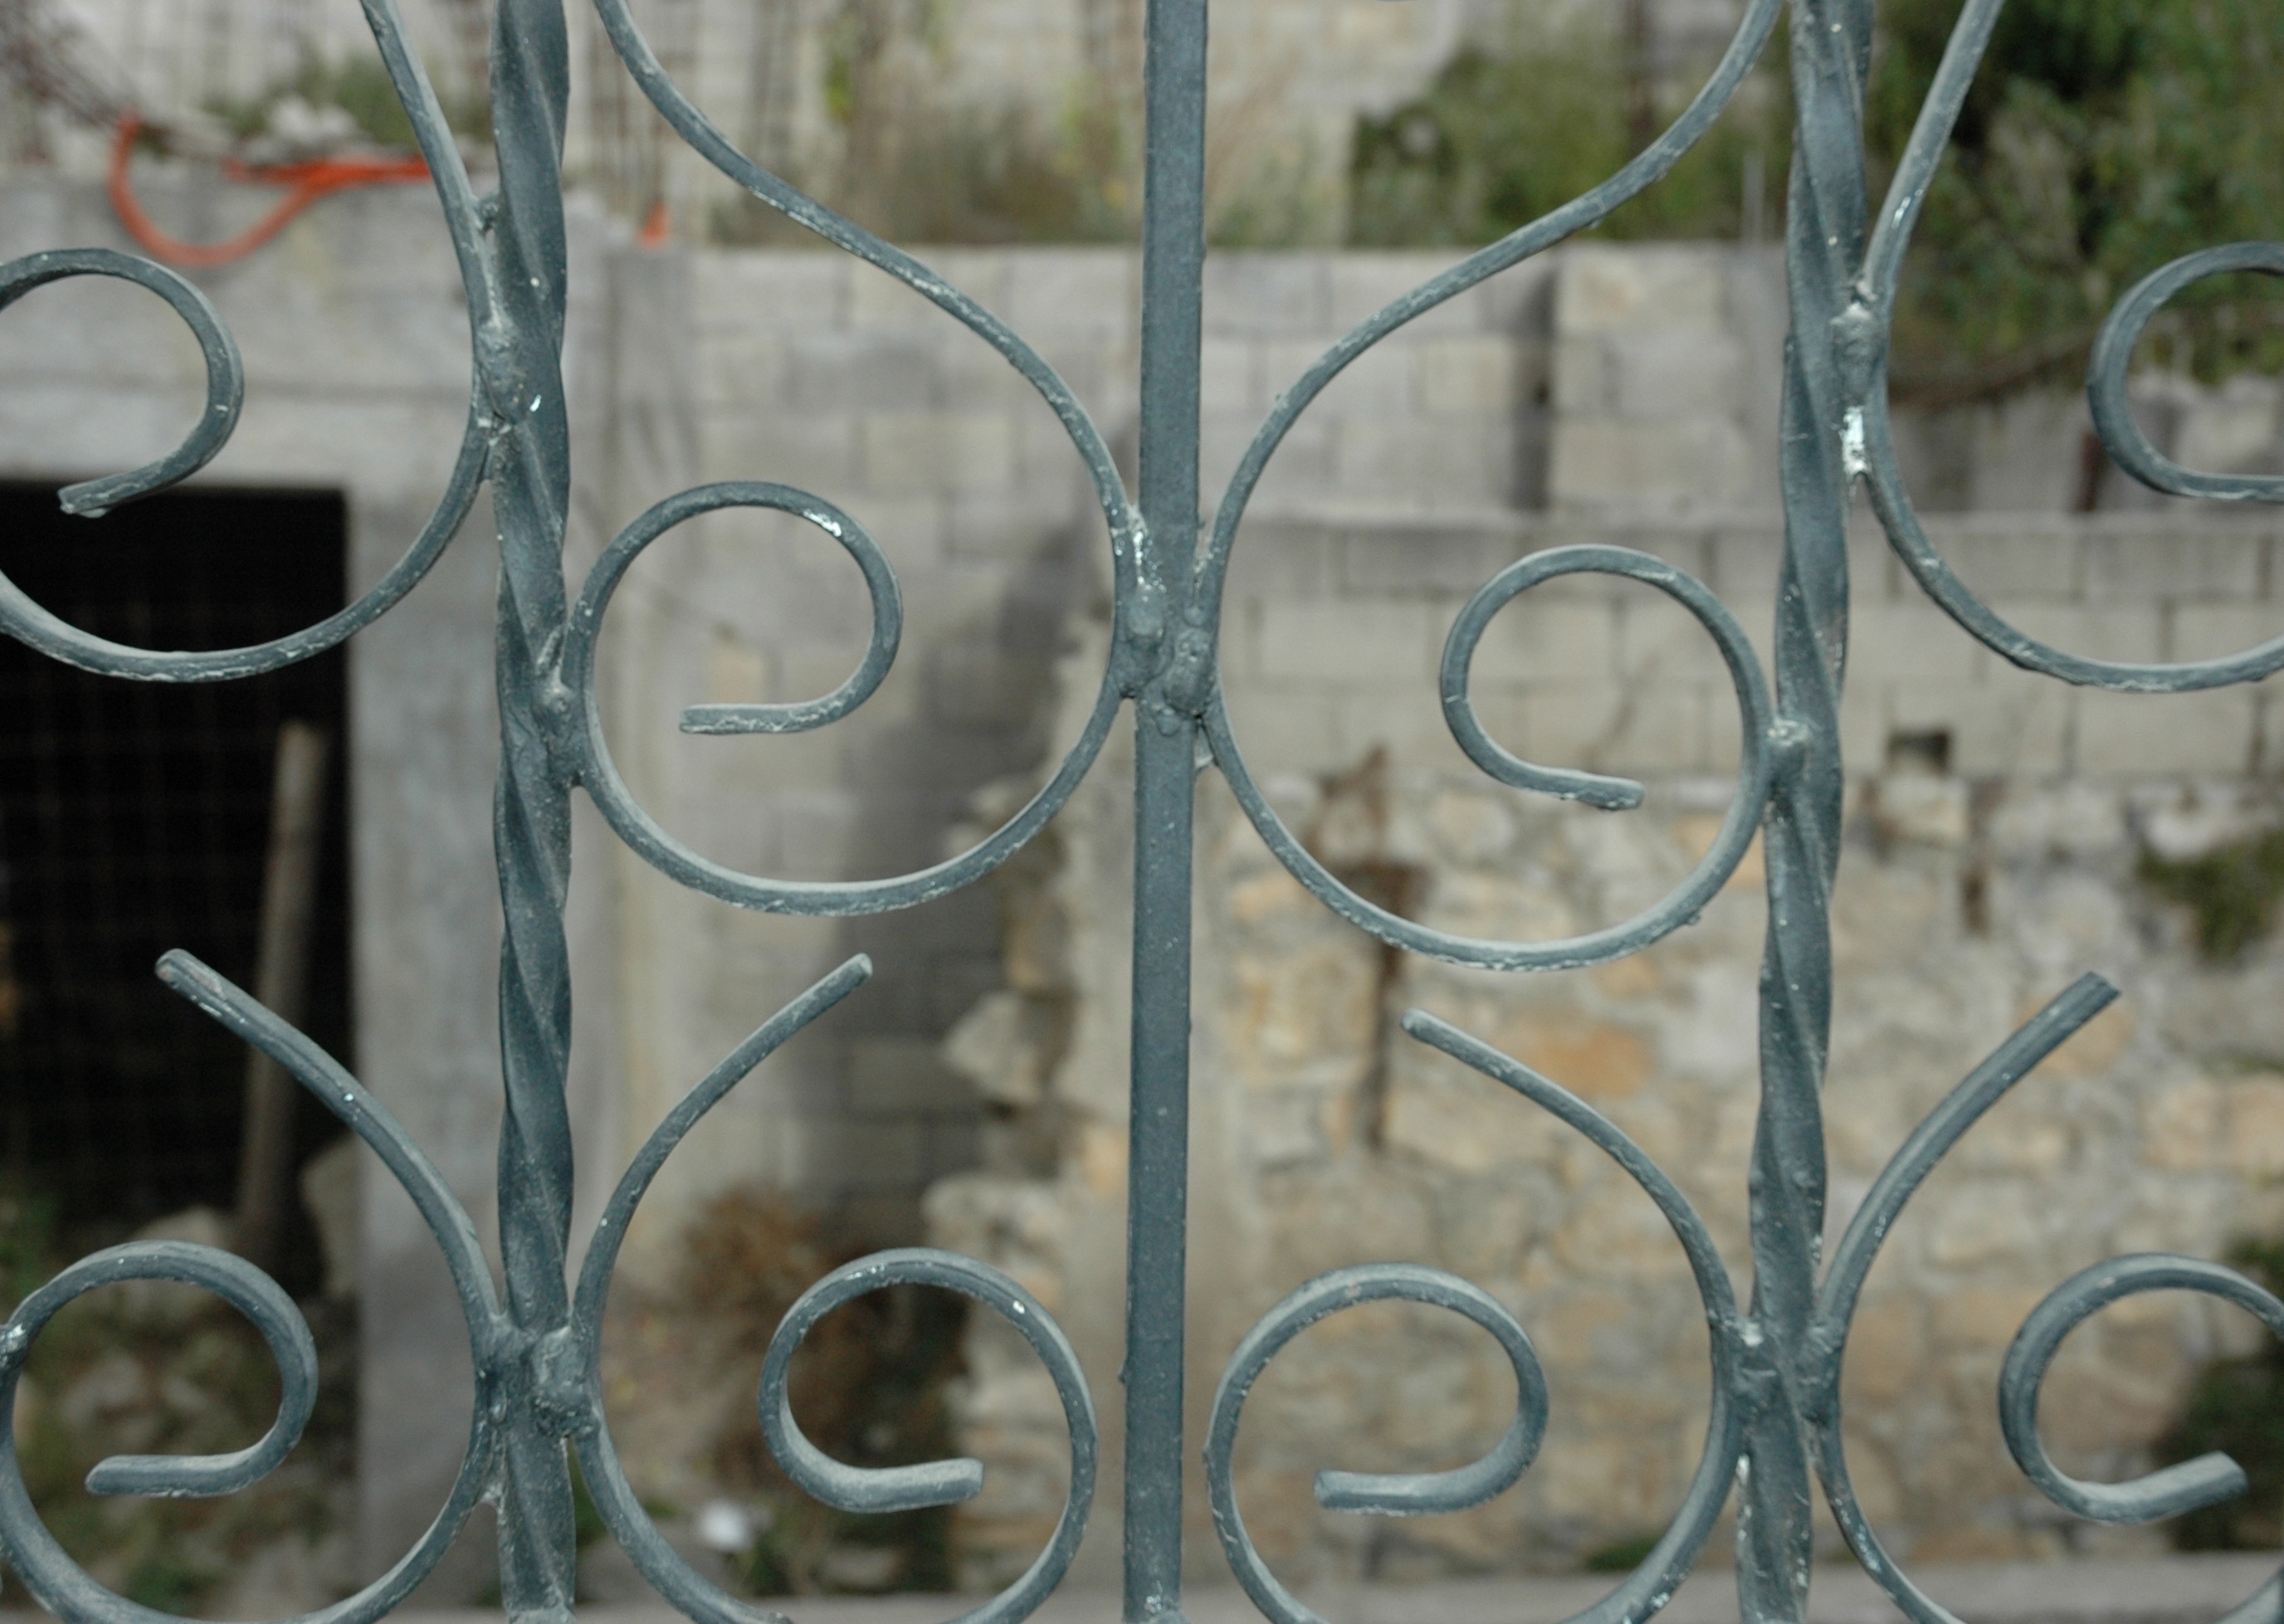 locked in house window bars mexico